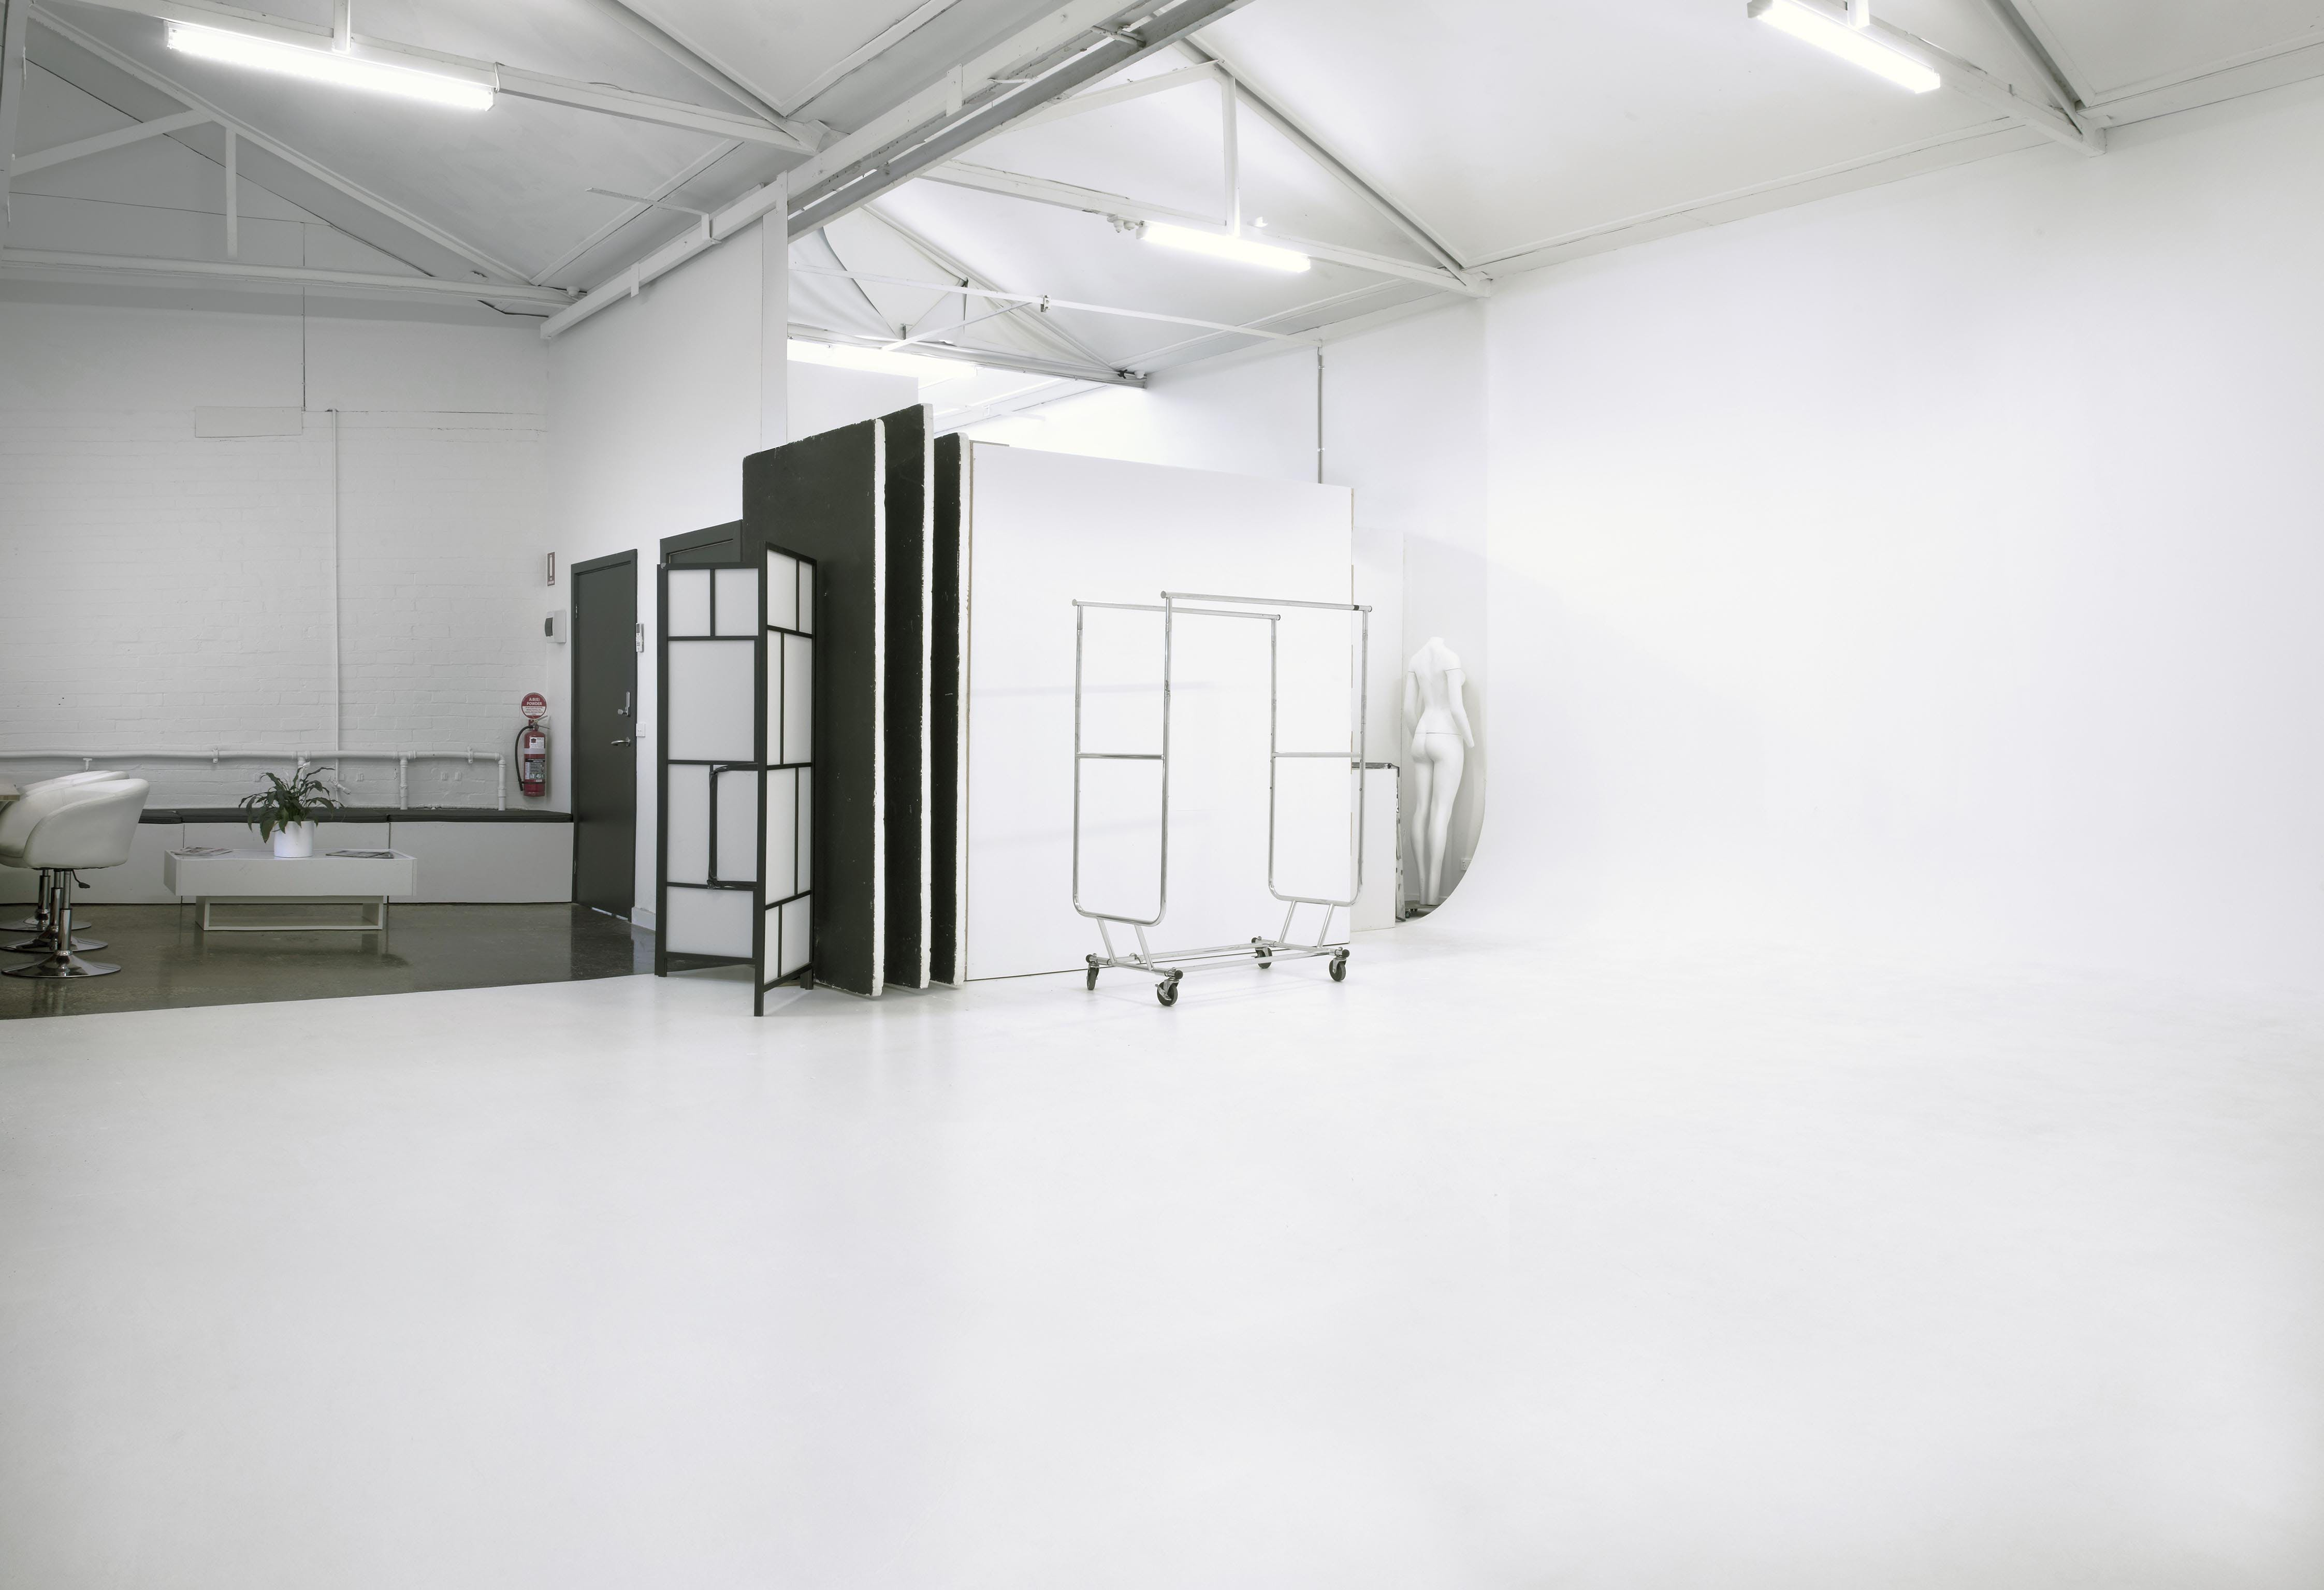 How impressive is the light in this photography studio, image 1